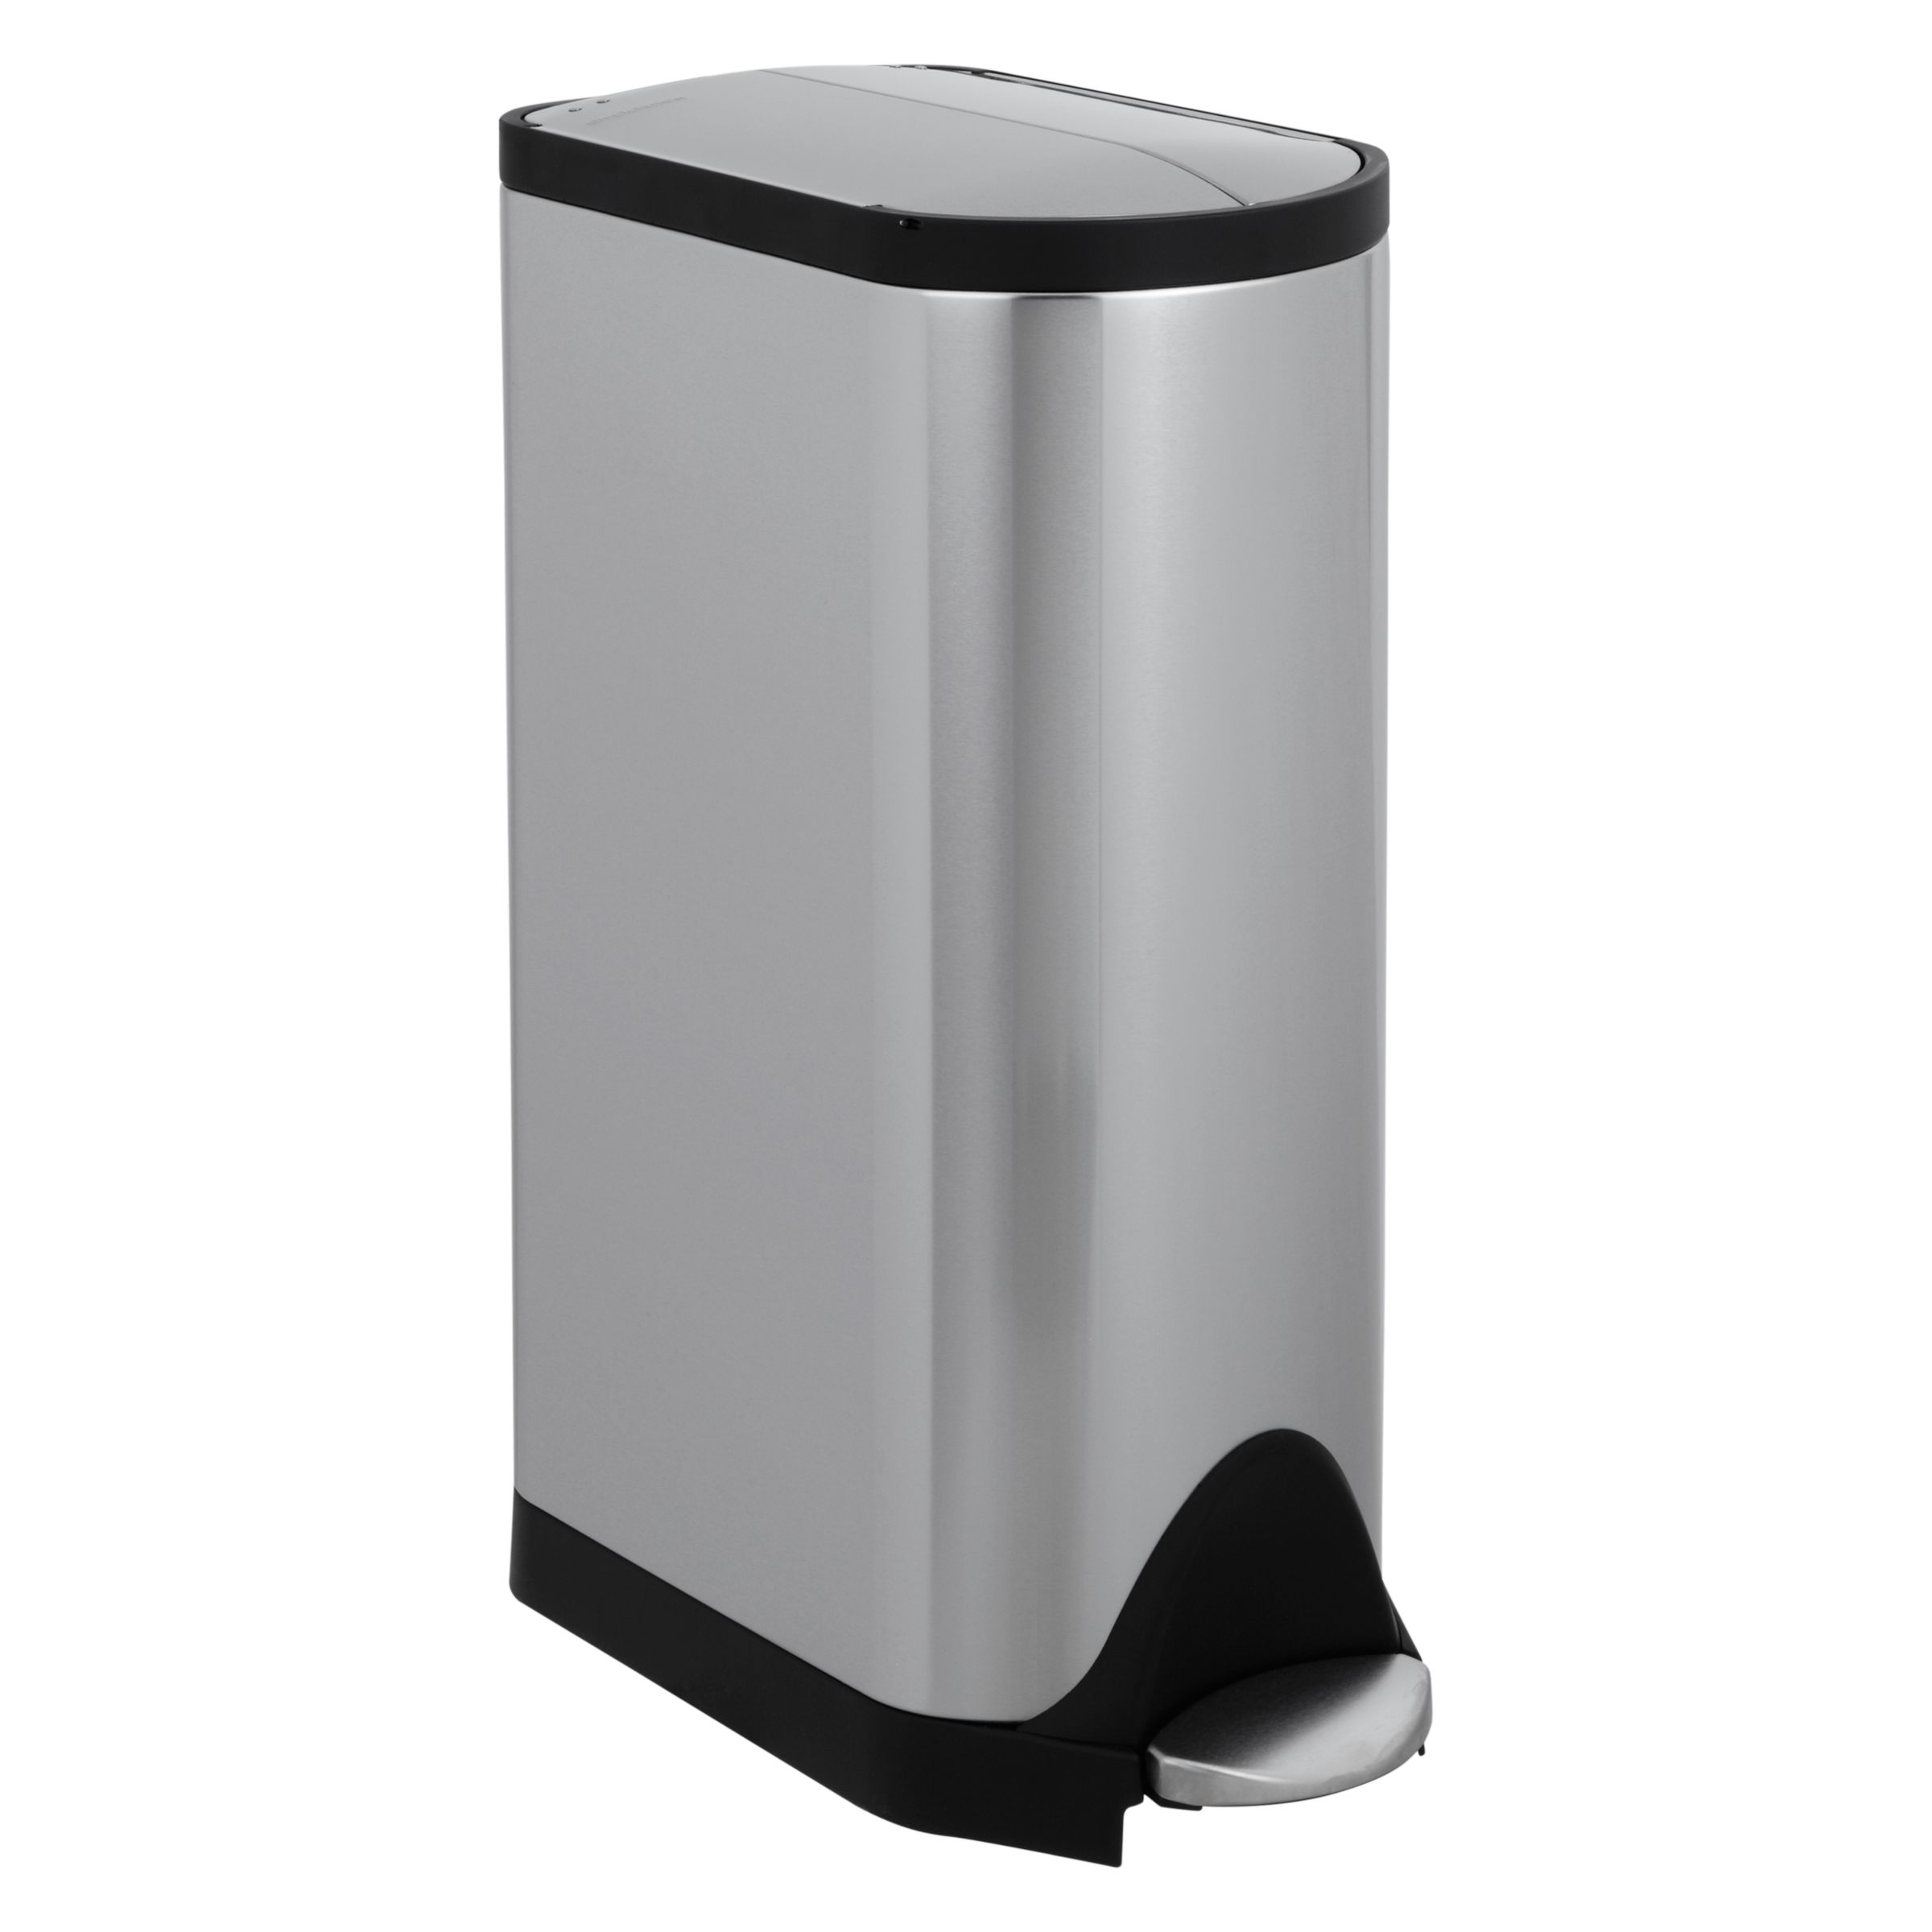 Simplehuman simplehuman Butterfly Pedal Bin, Brushed Stainless Steel, 30L